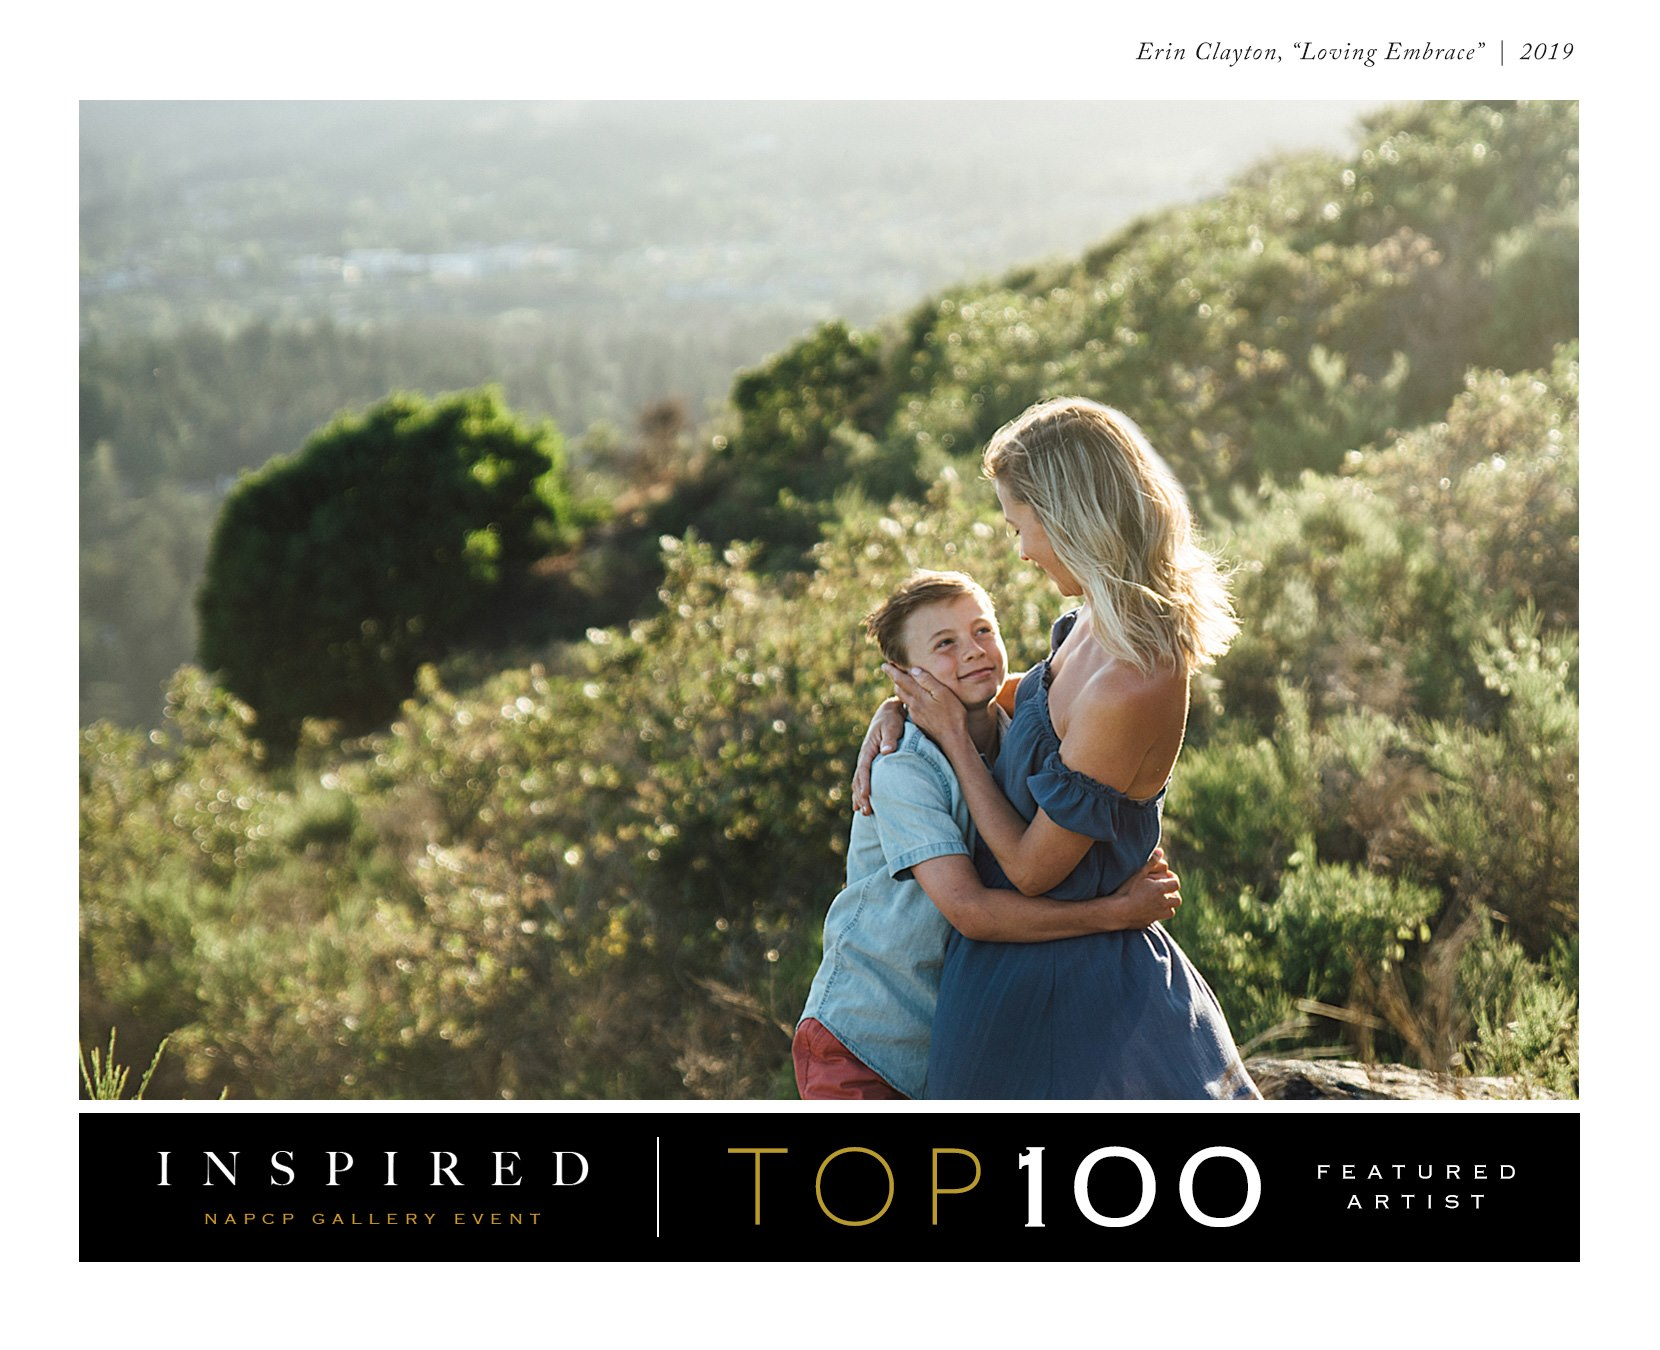 inspired napcp gallery event top 100 featured artist erin clayton photography.jpg